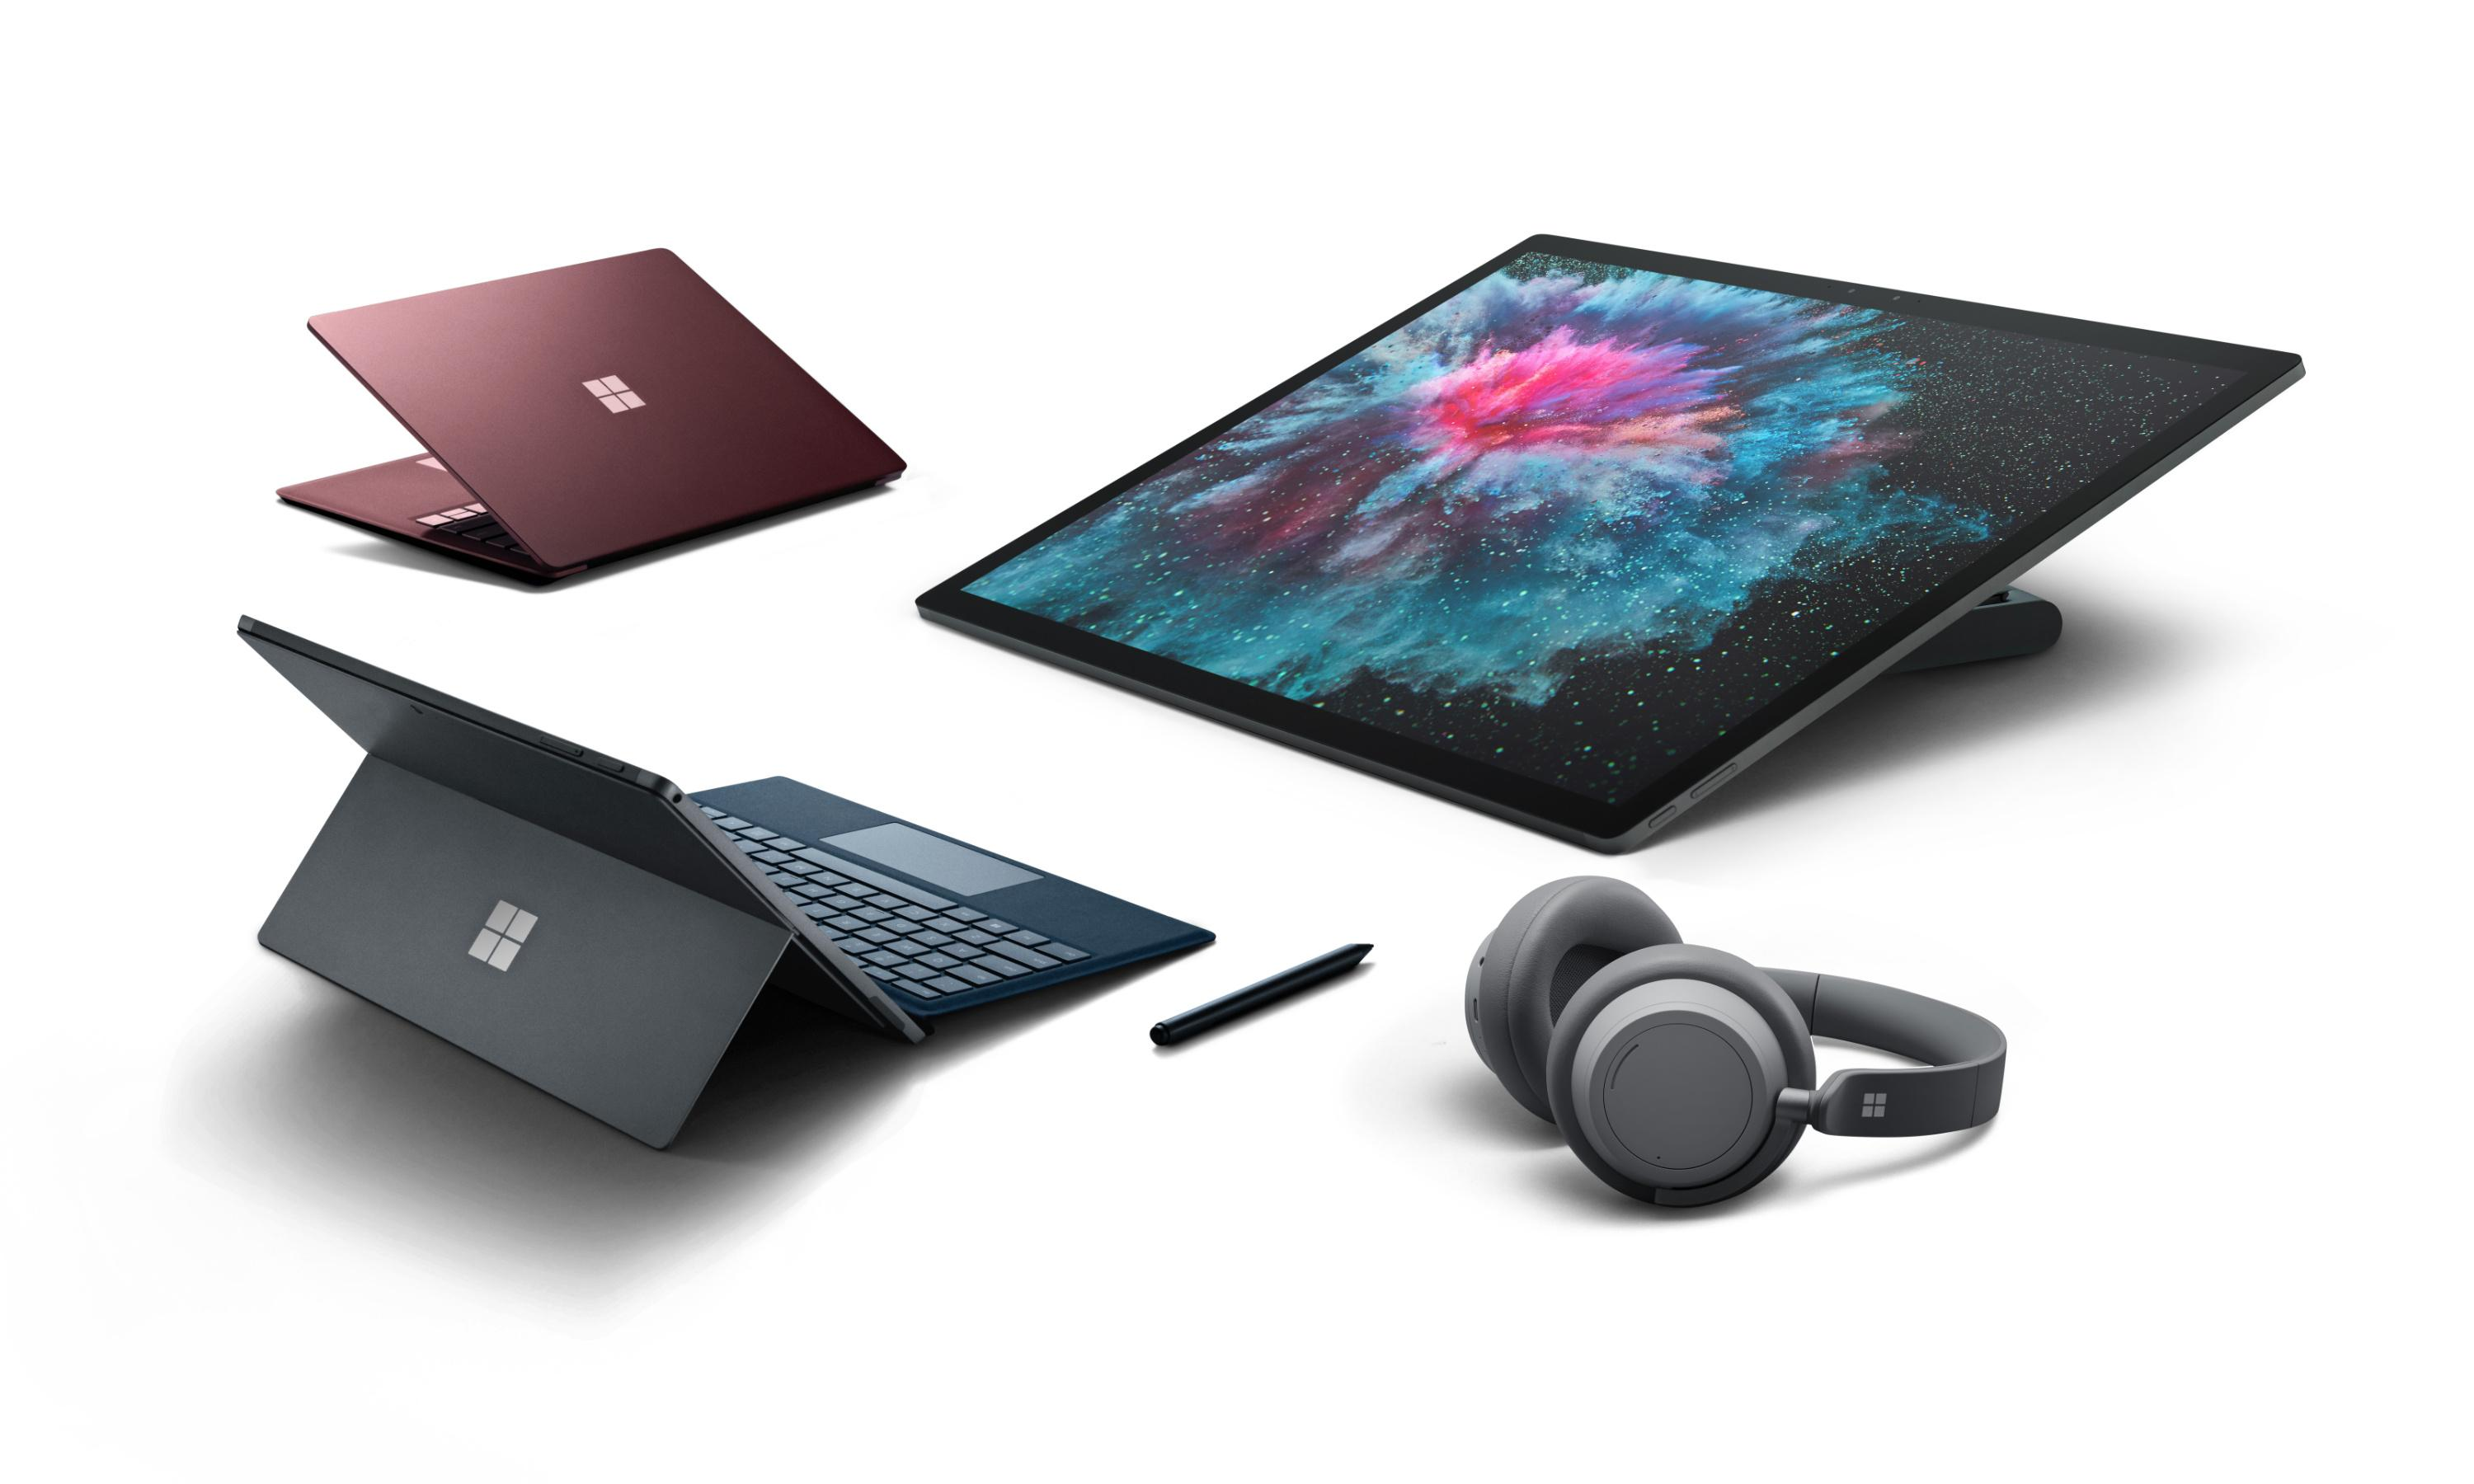 Microsoft launches faster Surface Pro 6 and Surface Laptop 2 machines